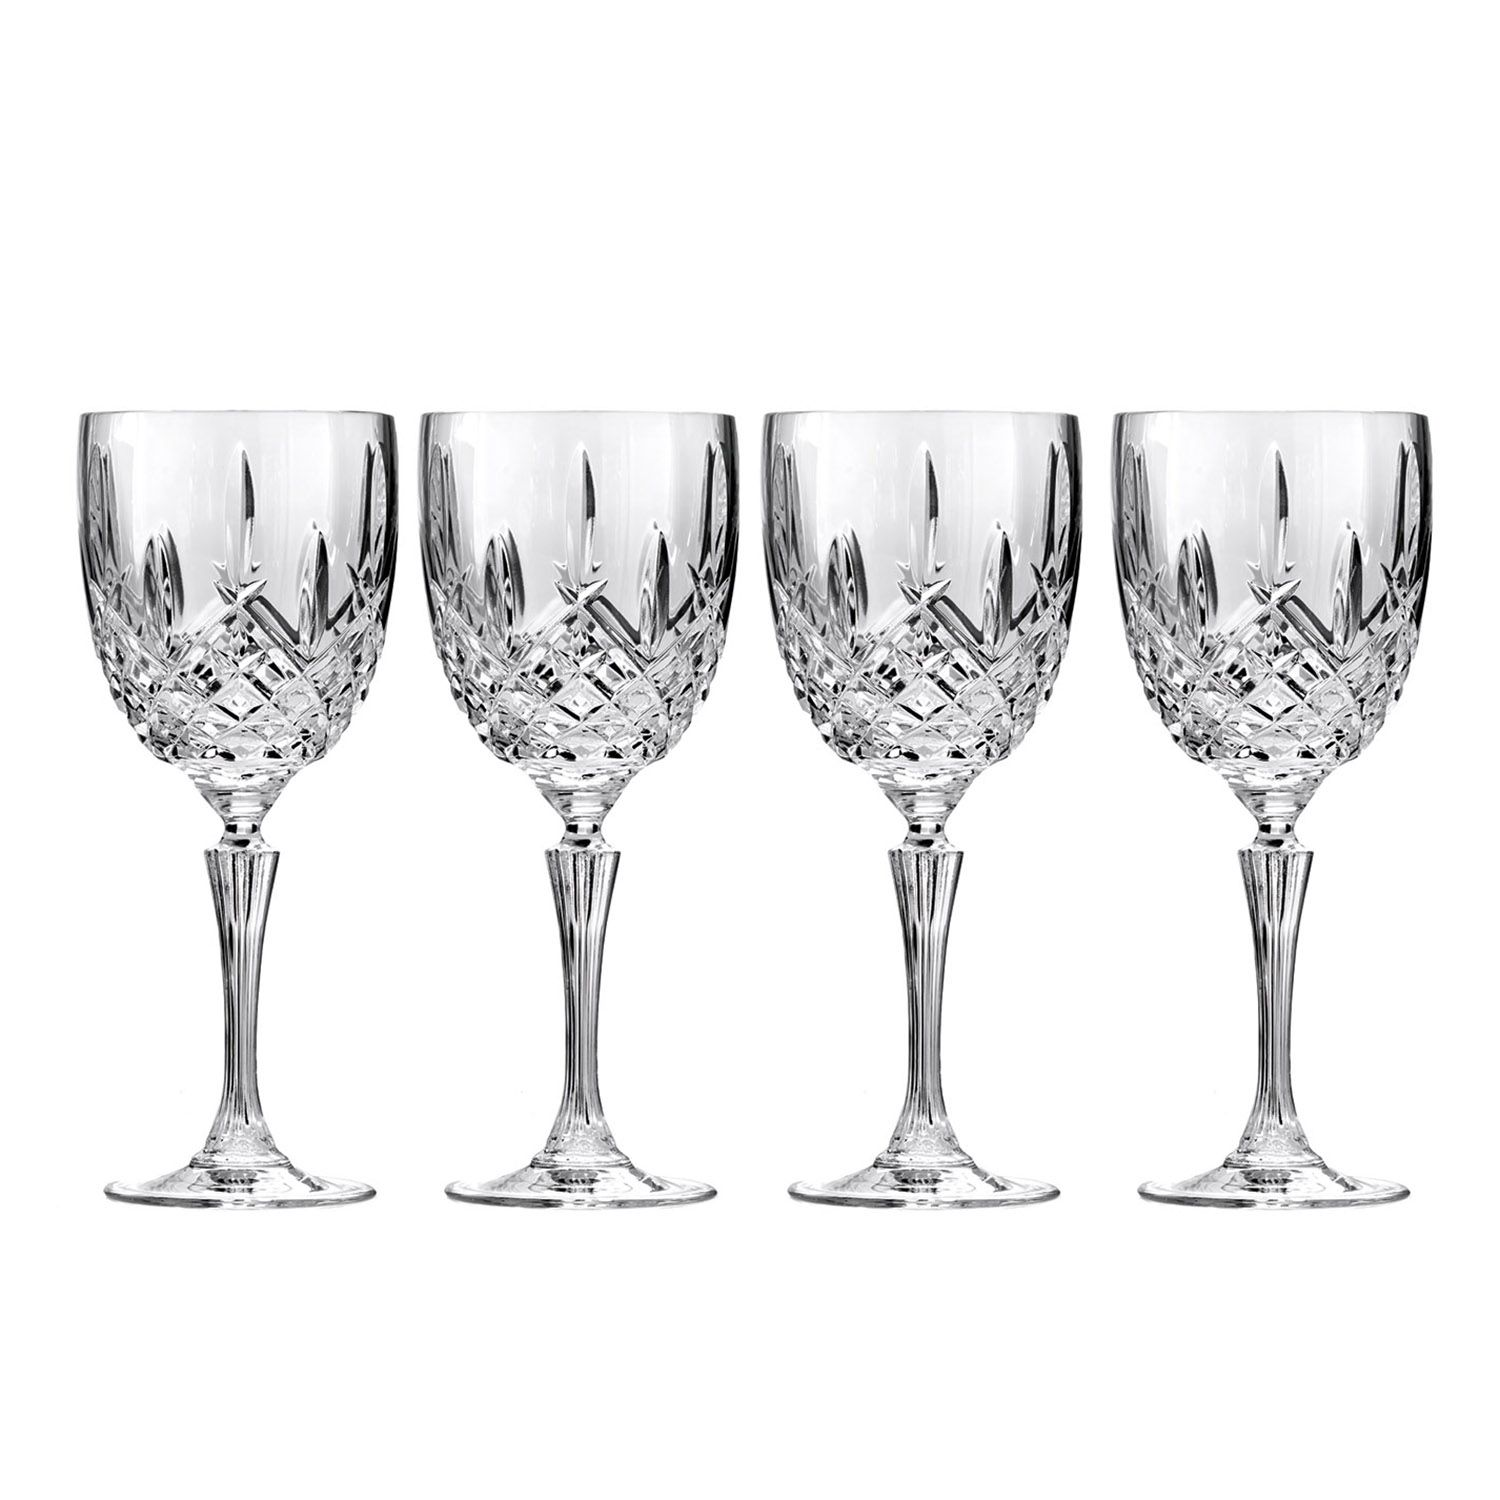 marquis by waterford markham 4pc allpurpose crystal wine goblet set - Waterford Crystal Wine Glasses